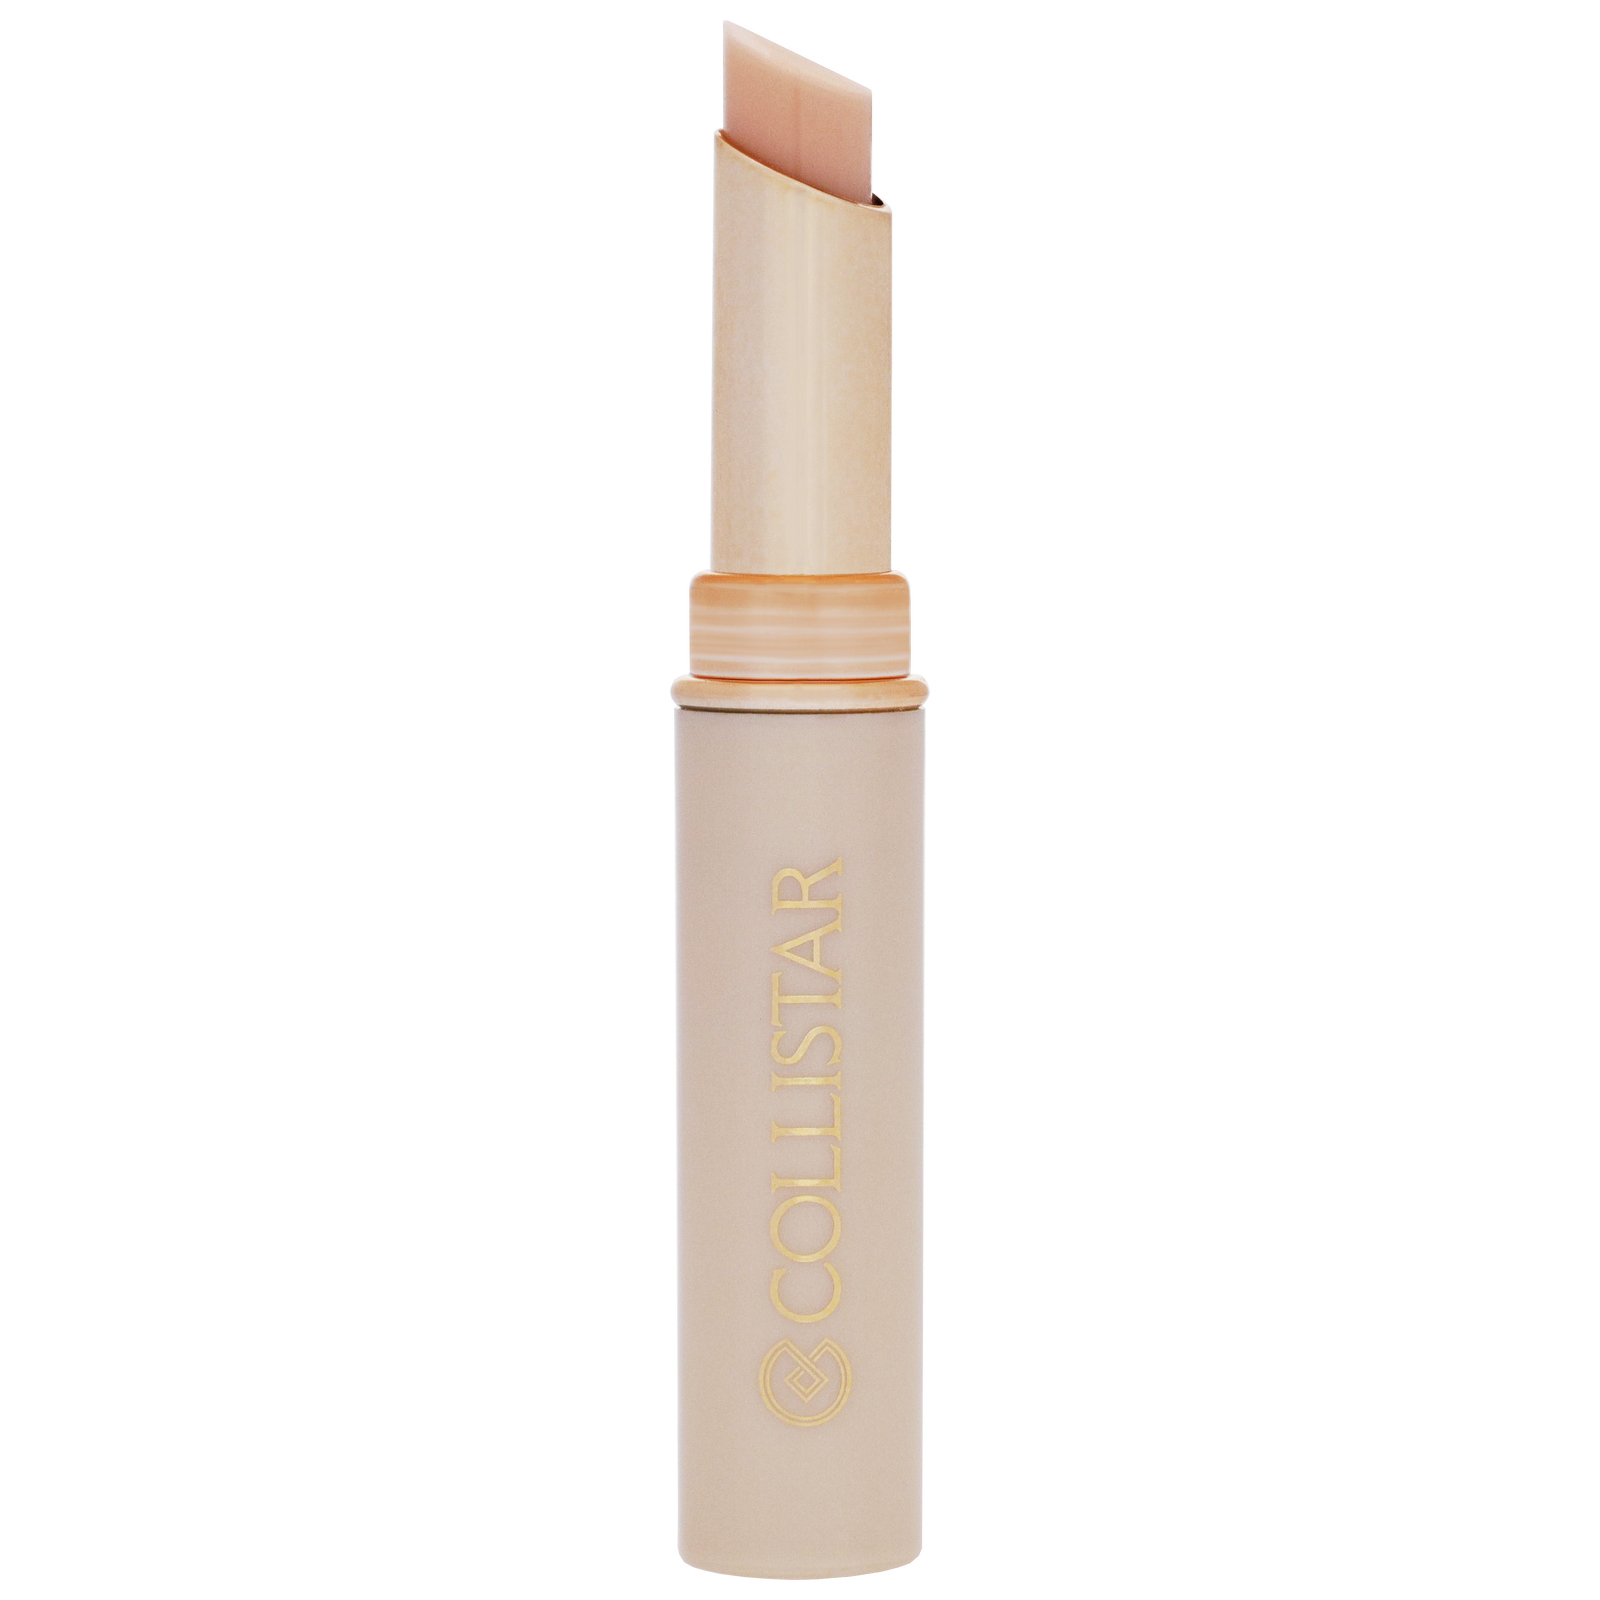 Collistar Specialties & Treatments Lip Primer Fixer 2ml